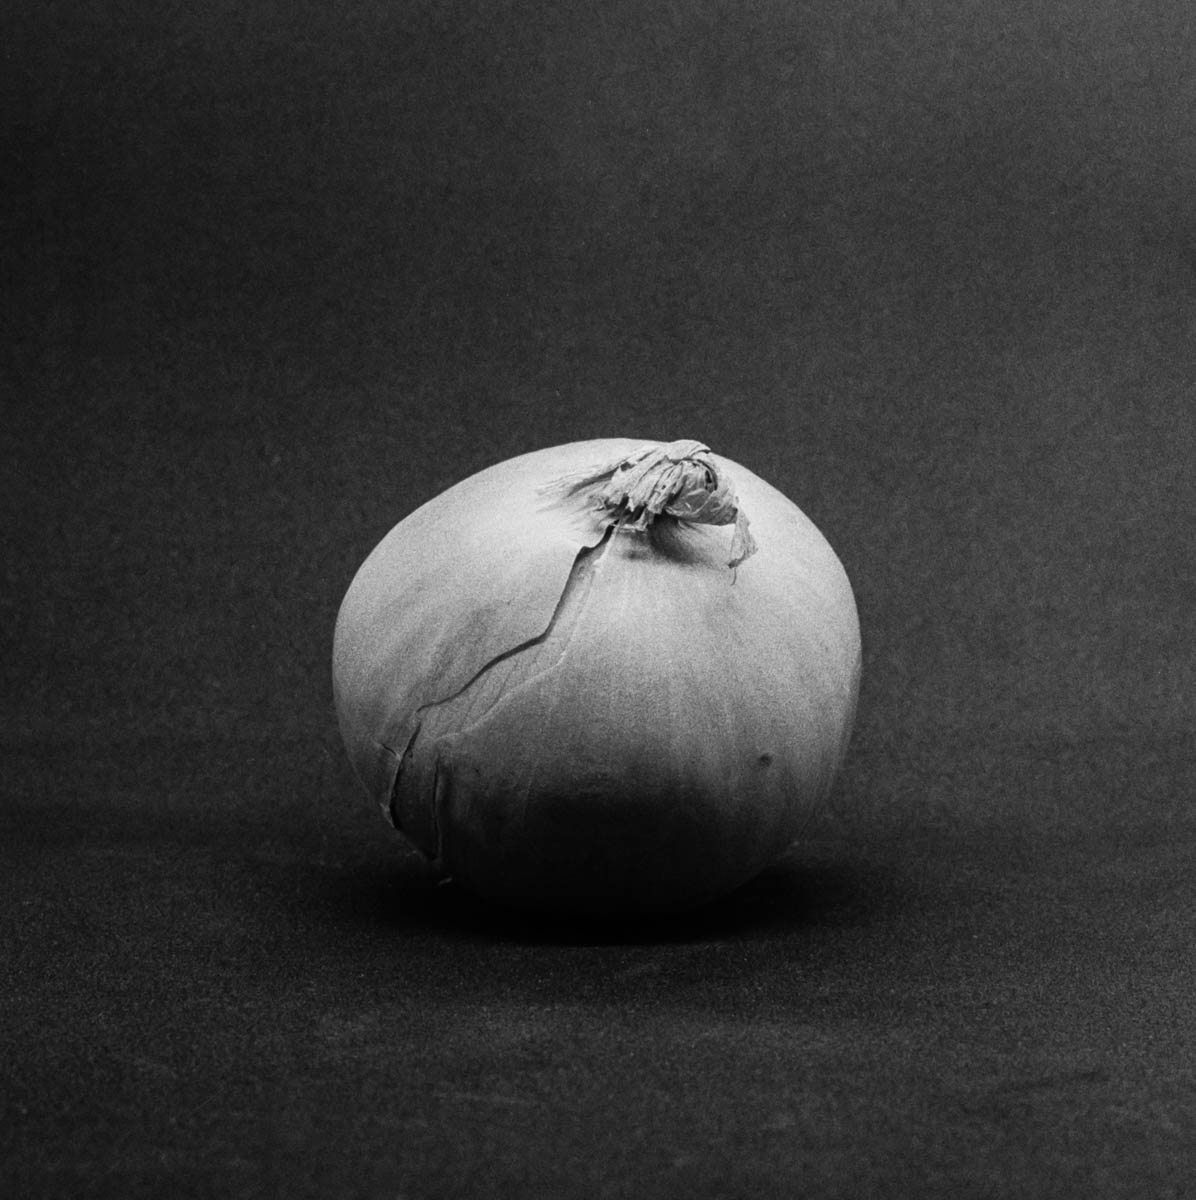 Onion #3 - ILFORD HP5 PLUS, Minolta SRT 101b, MD Rokkor 50mm f/1.7 - Nigel Fishwick